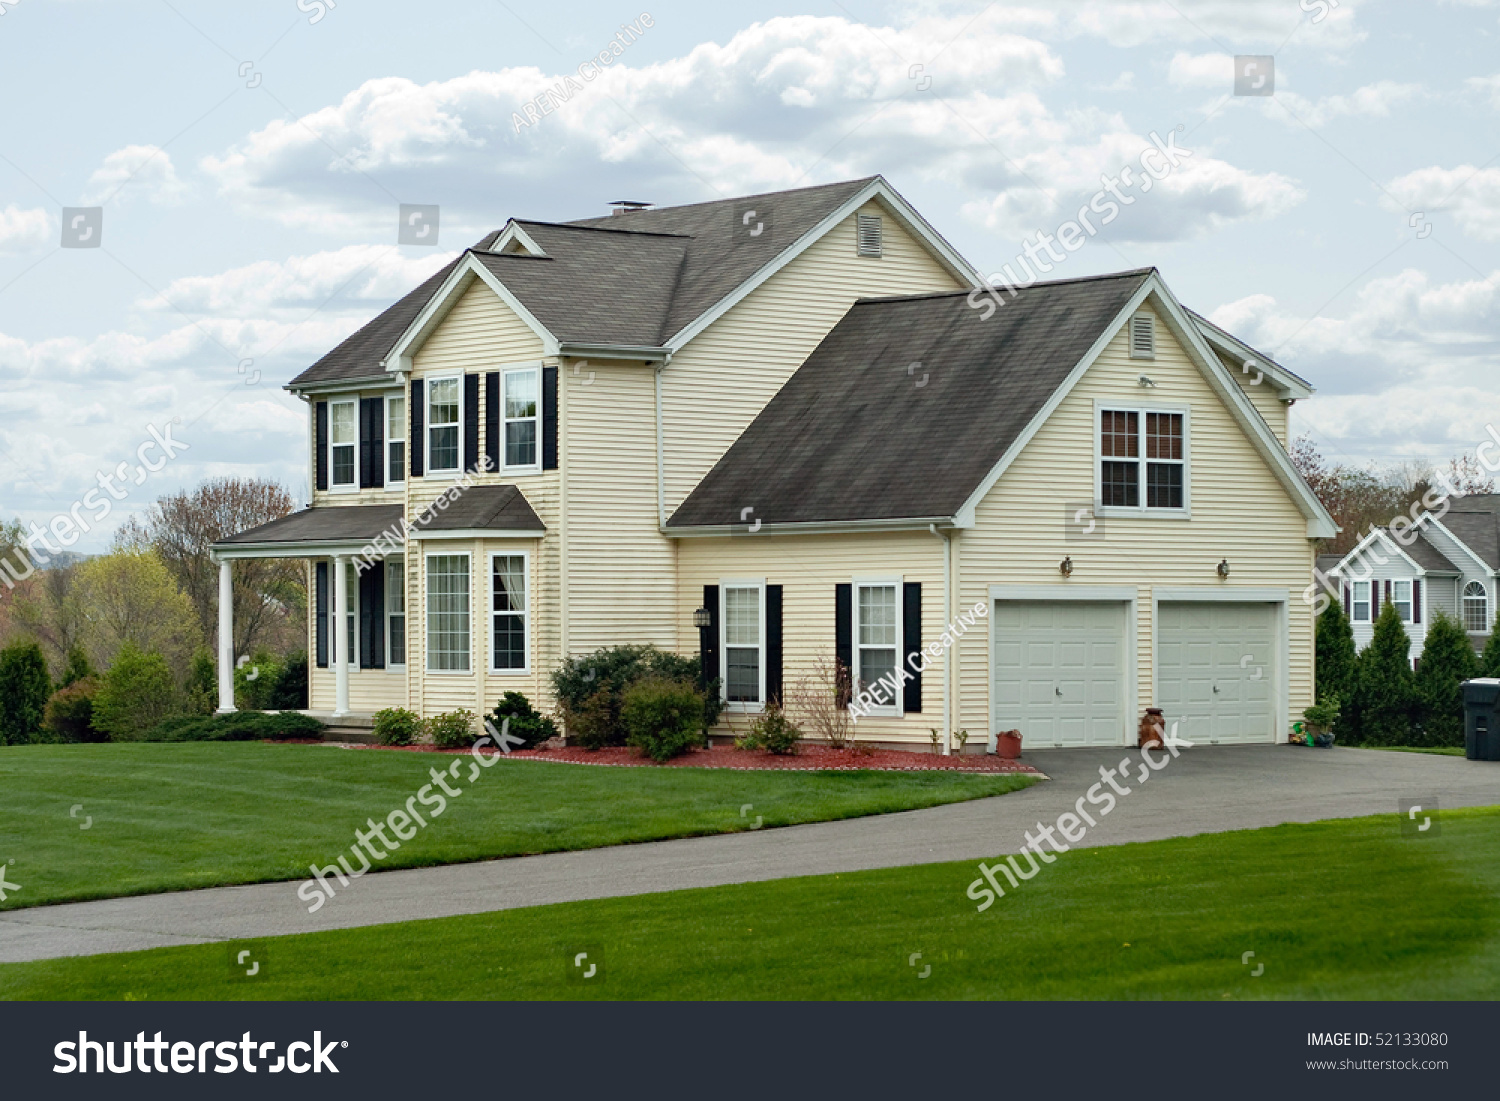 A Modern Colonial Style Residential Suburban Home With A Small Porch And A Two Car Garage Stock